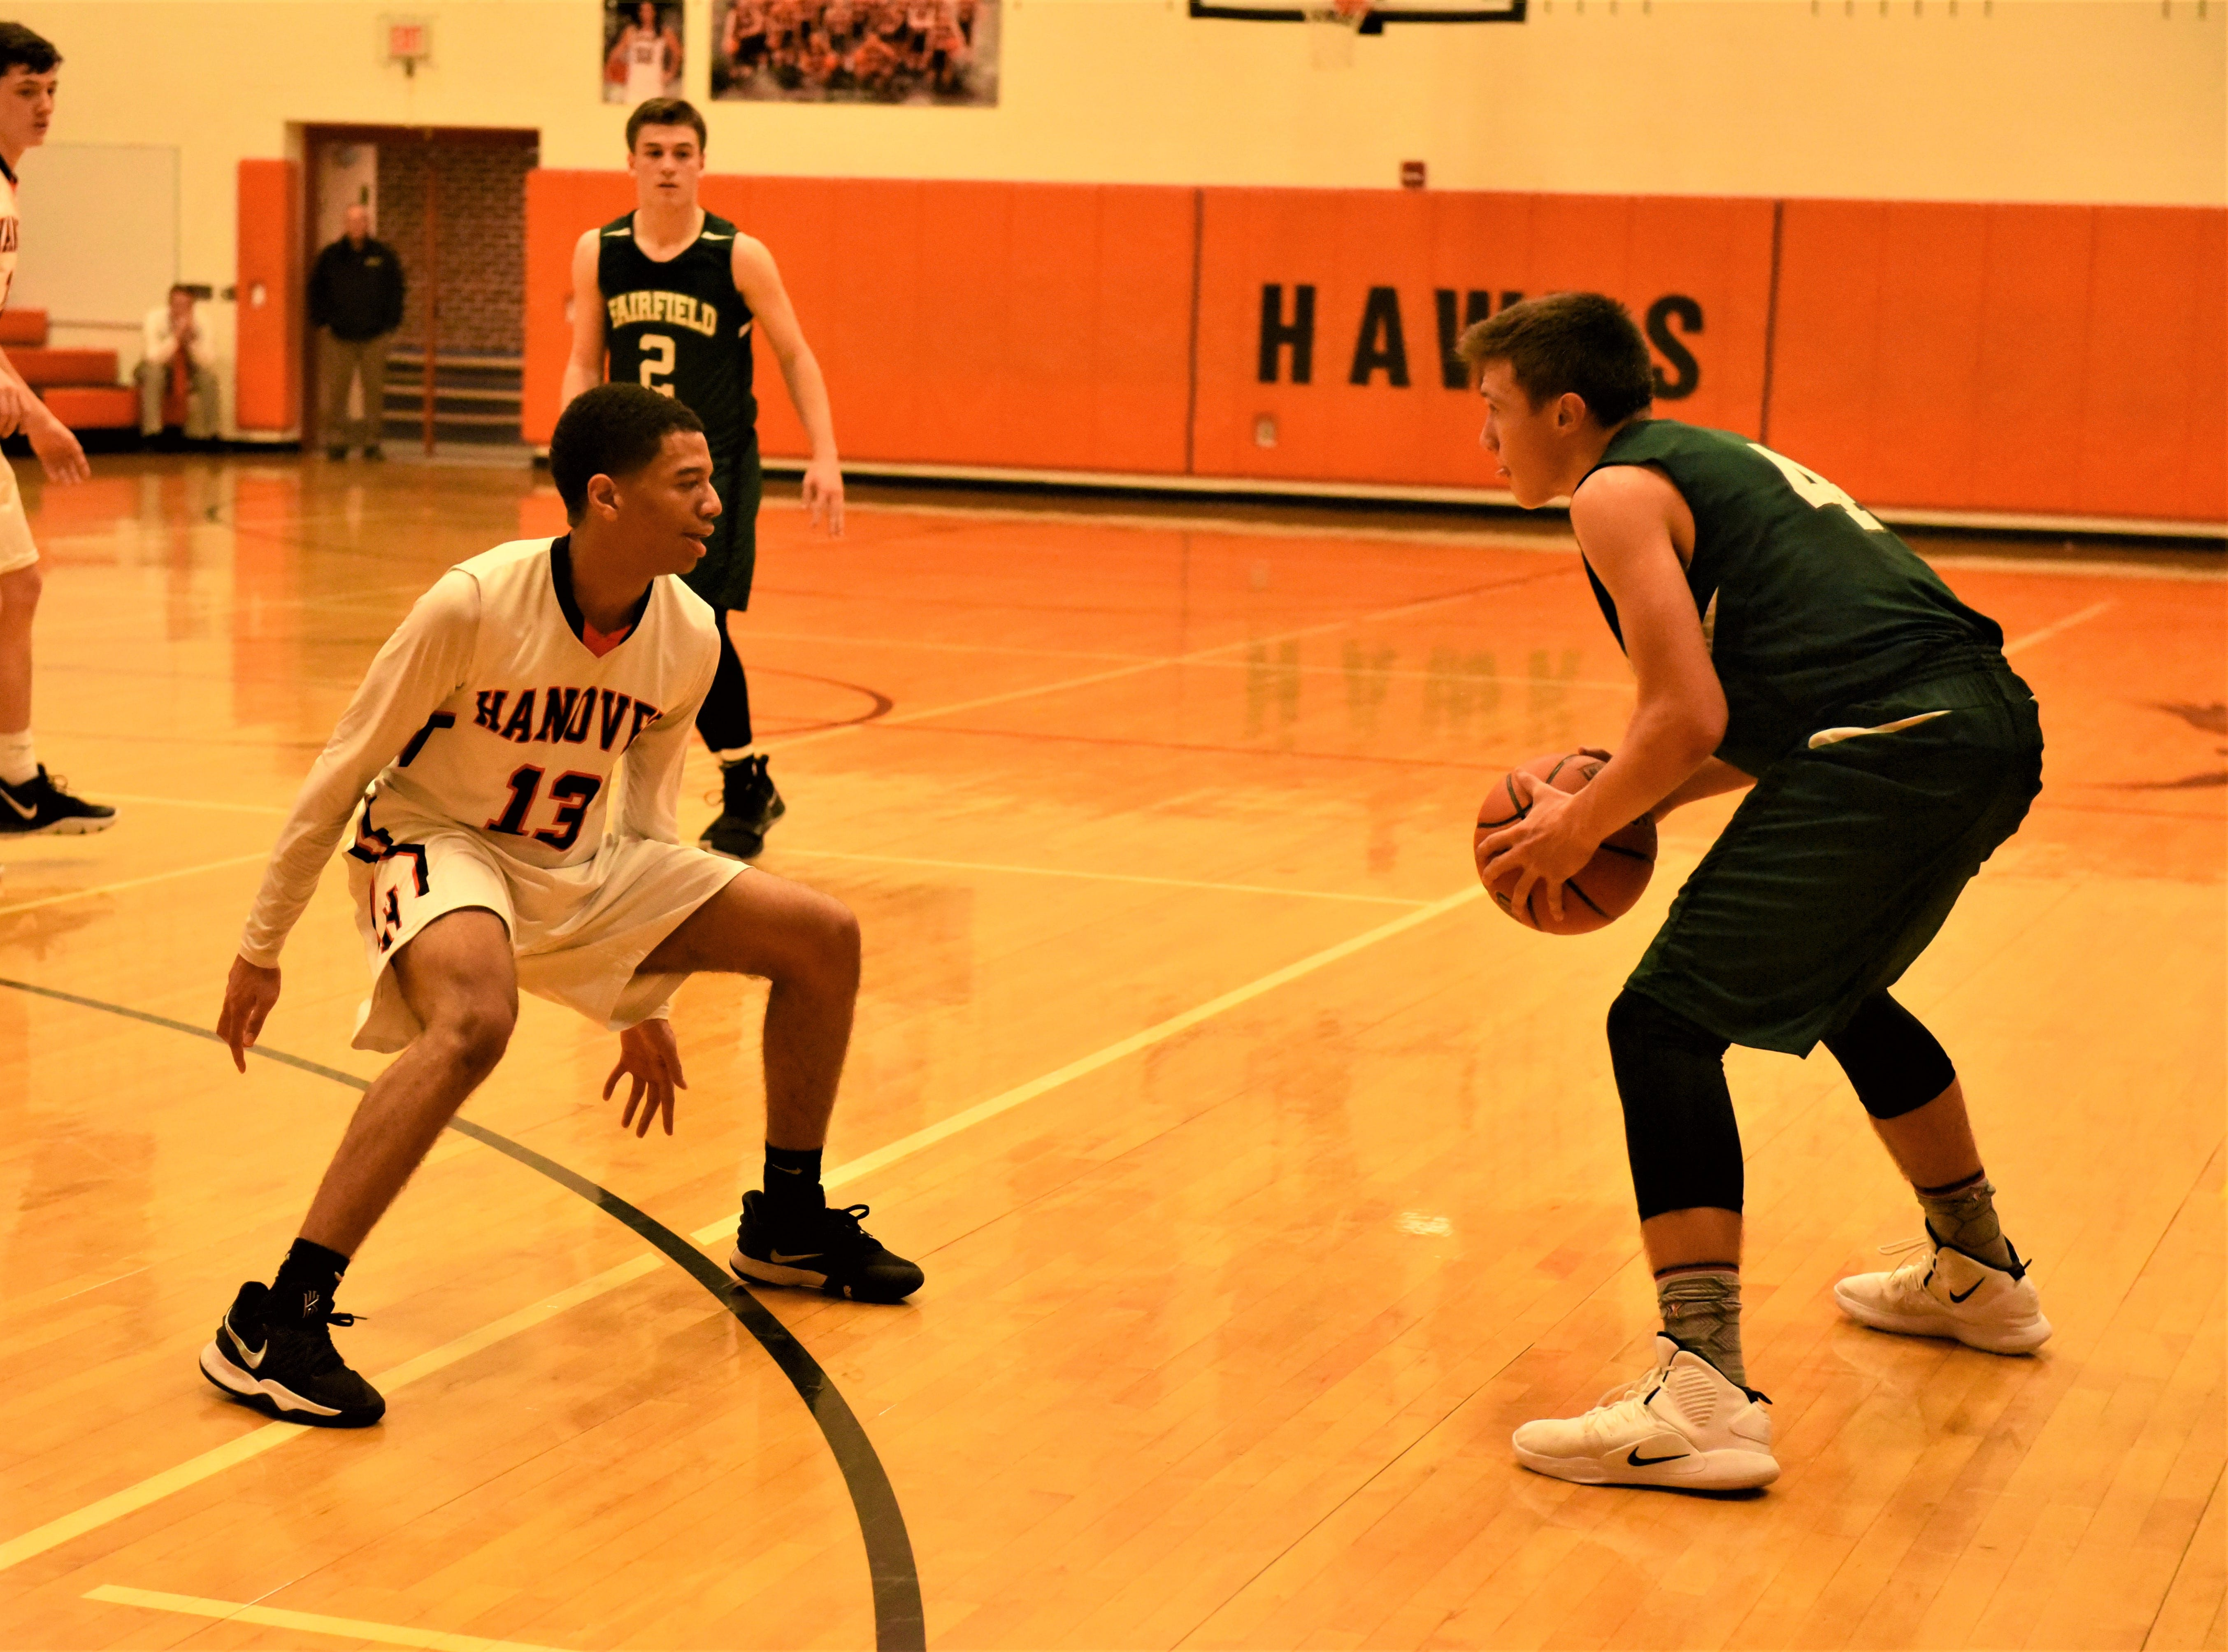 Kwame Myers plays defense on Peyton Stadler. Fairfield High School lost at Hanover High School on Dec. 21, 57 to 43.